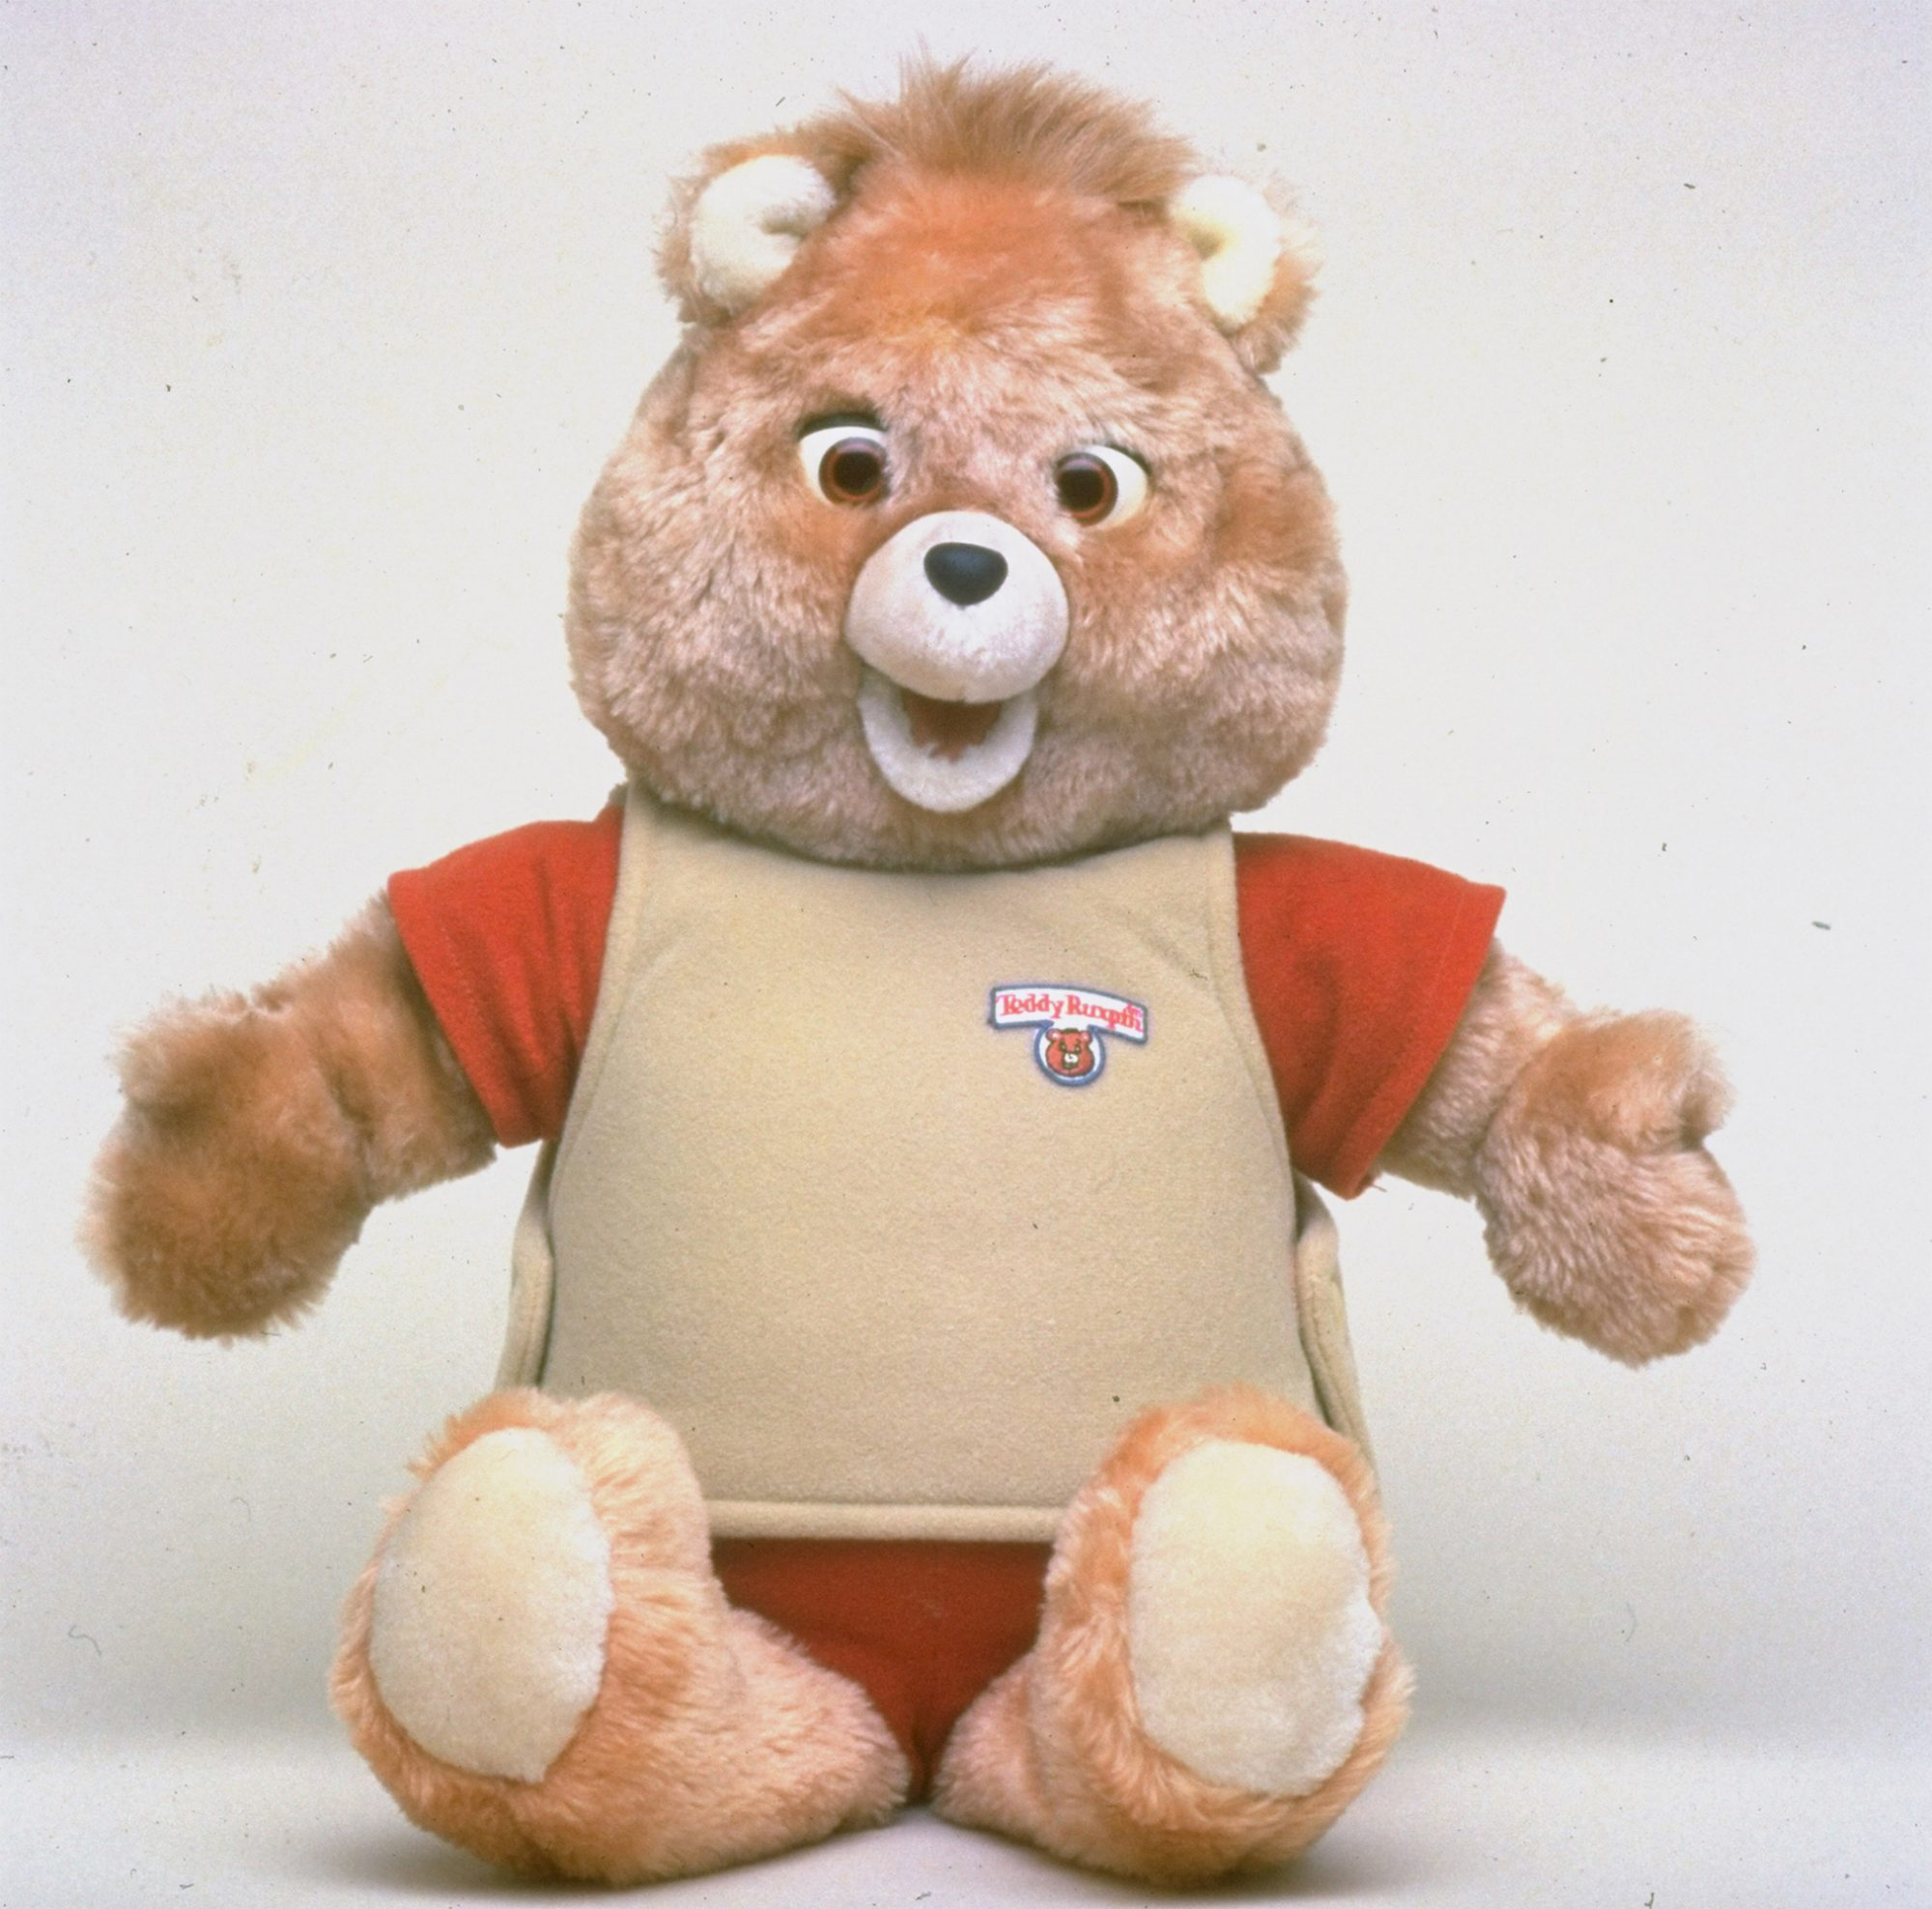 Unicorn Teddy Bear Toys R Us, The 10 Most Iconic Toys R Us Sold Products Of All Time People Com